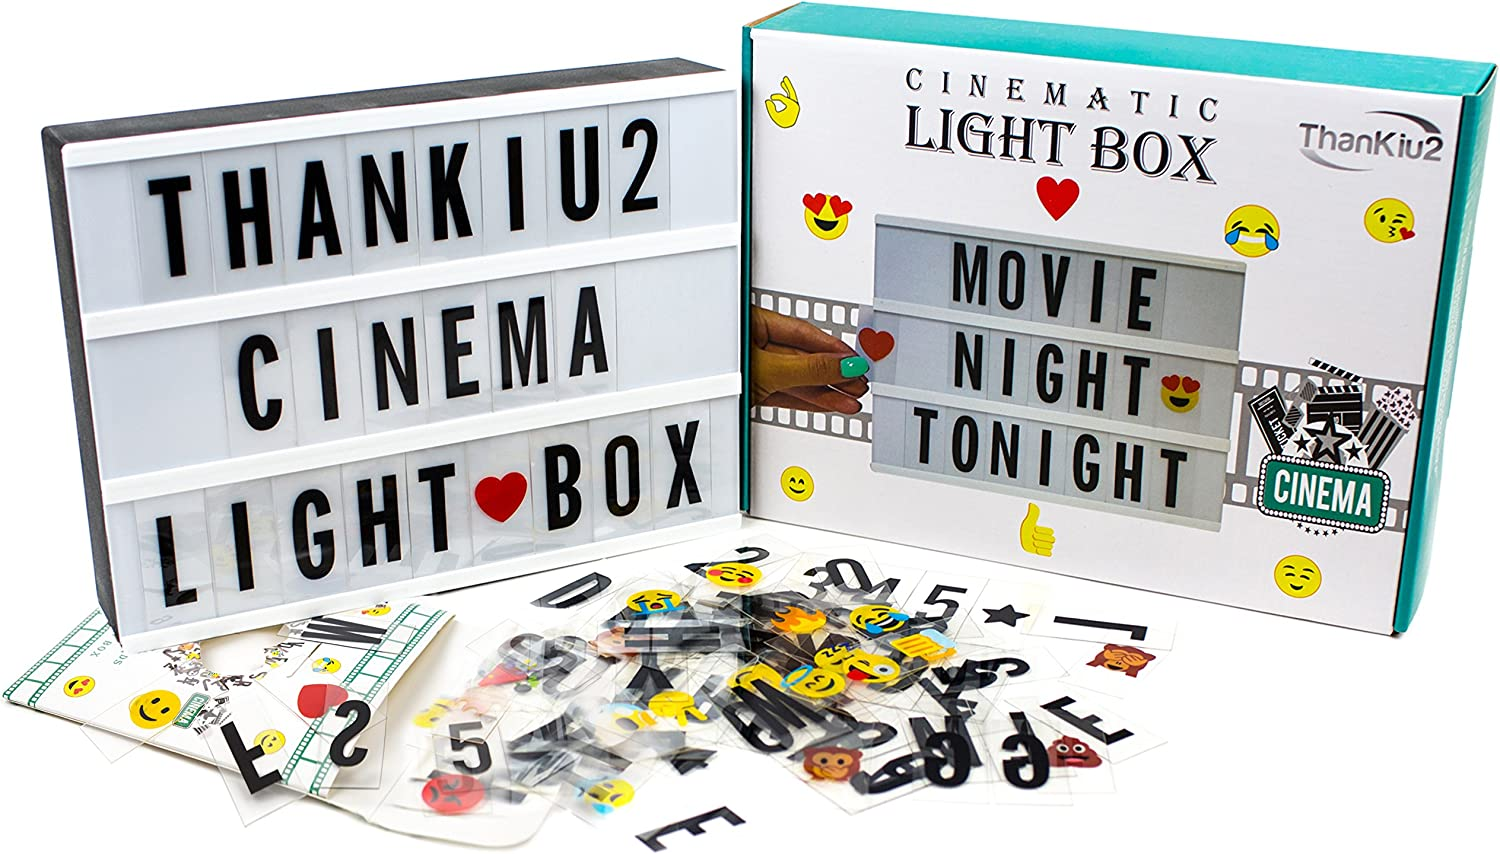 Cinema Light Box with Letters - Vintage Cinematic Light Up Message And Note Sign With 192 Letters, Numbers, Symbols & Emojis – Personalized A4 White LED Lightbox With Extra Long Durable USB Cable